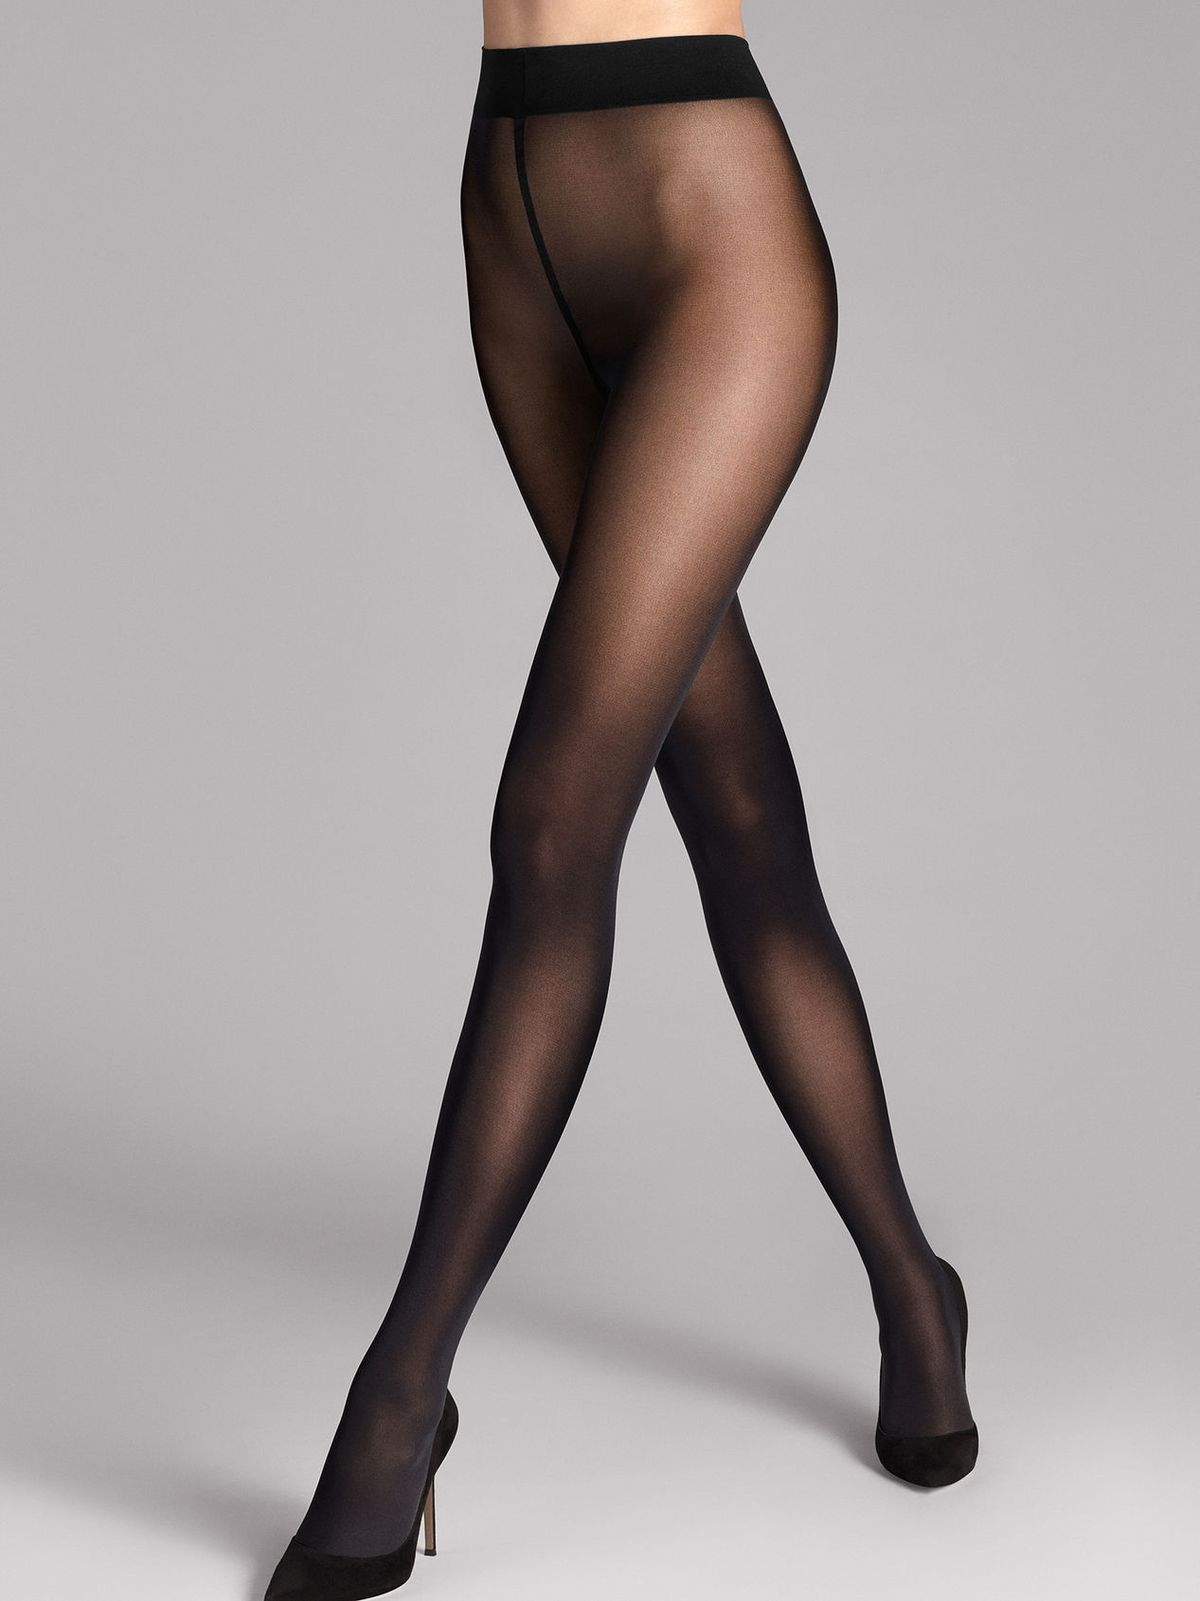 A model in Wolford tights.